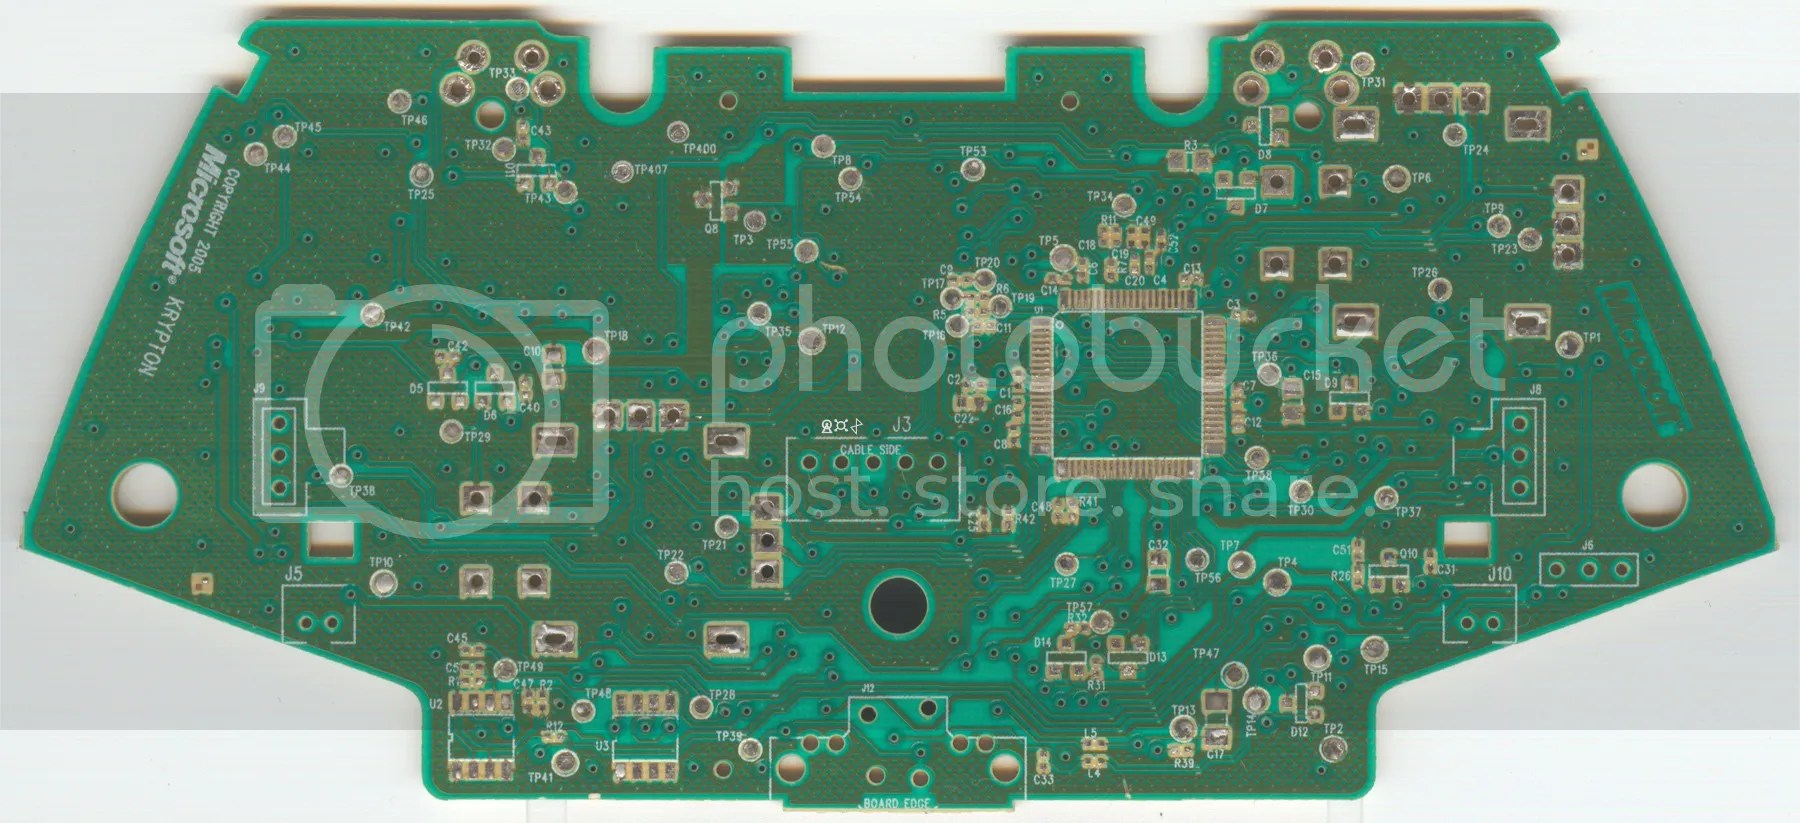 hight resolution of xbox wireless controller diagram explained wiring diagrams black ops 2 controller 360 controller wire diagram